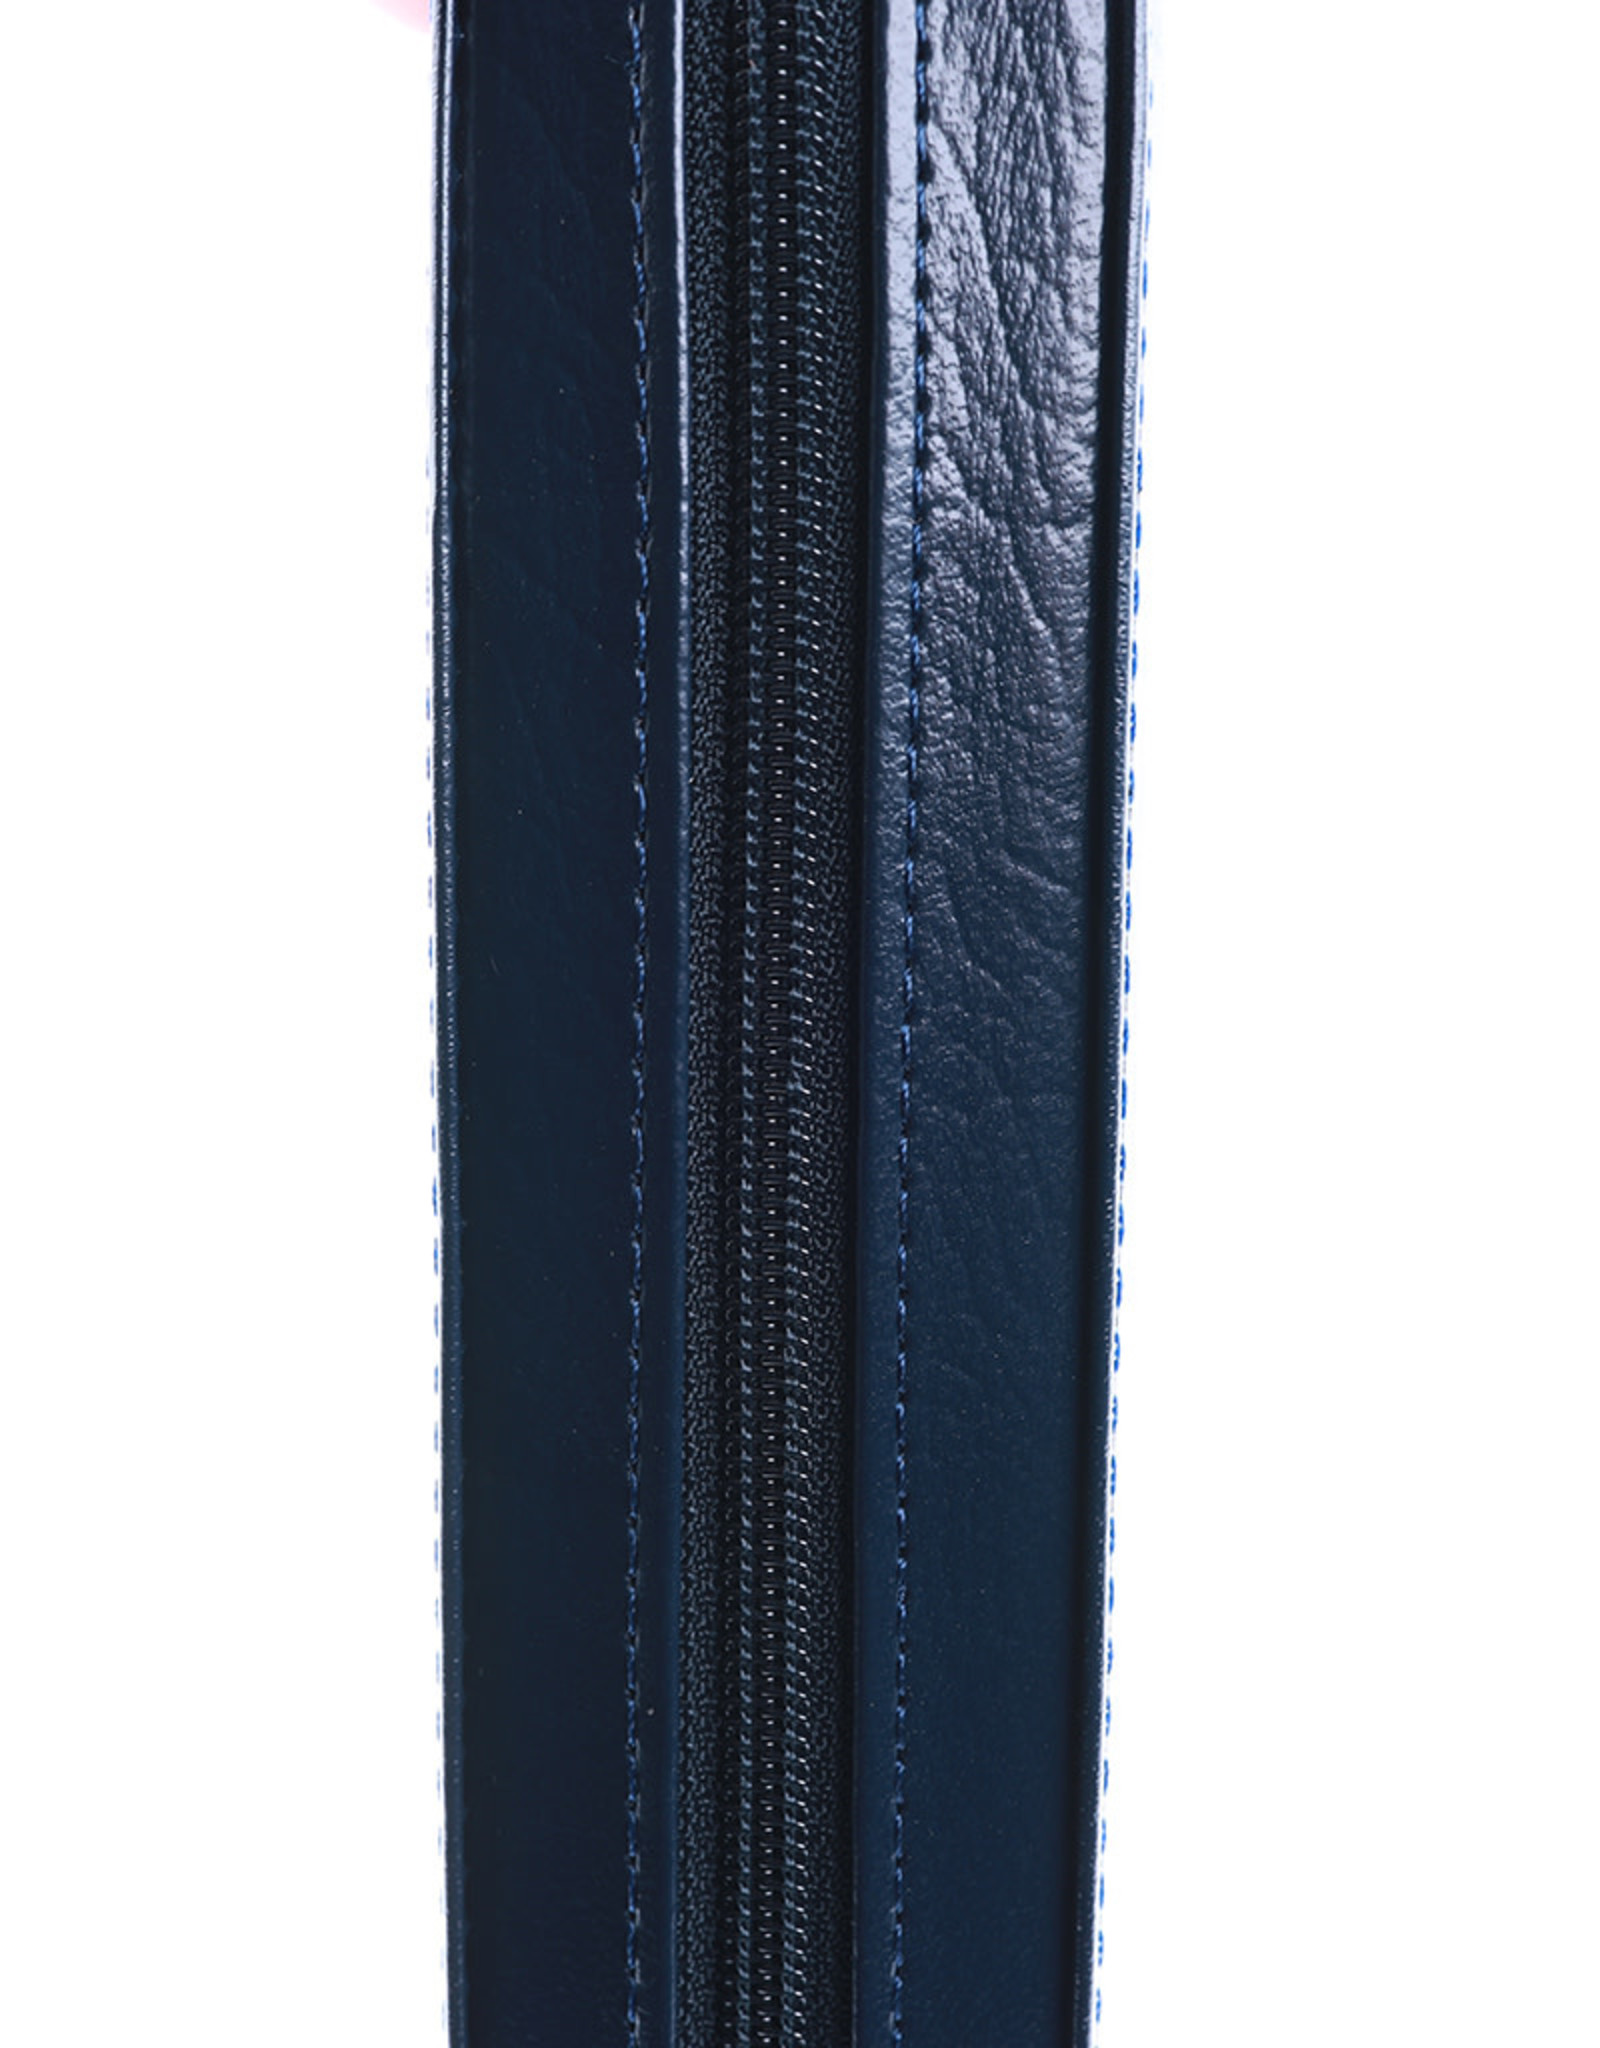 English-Russian Parallel Bible (KJV-SYNO), Index, with Zipper, Large, Navy